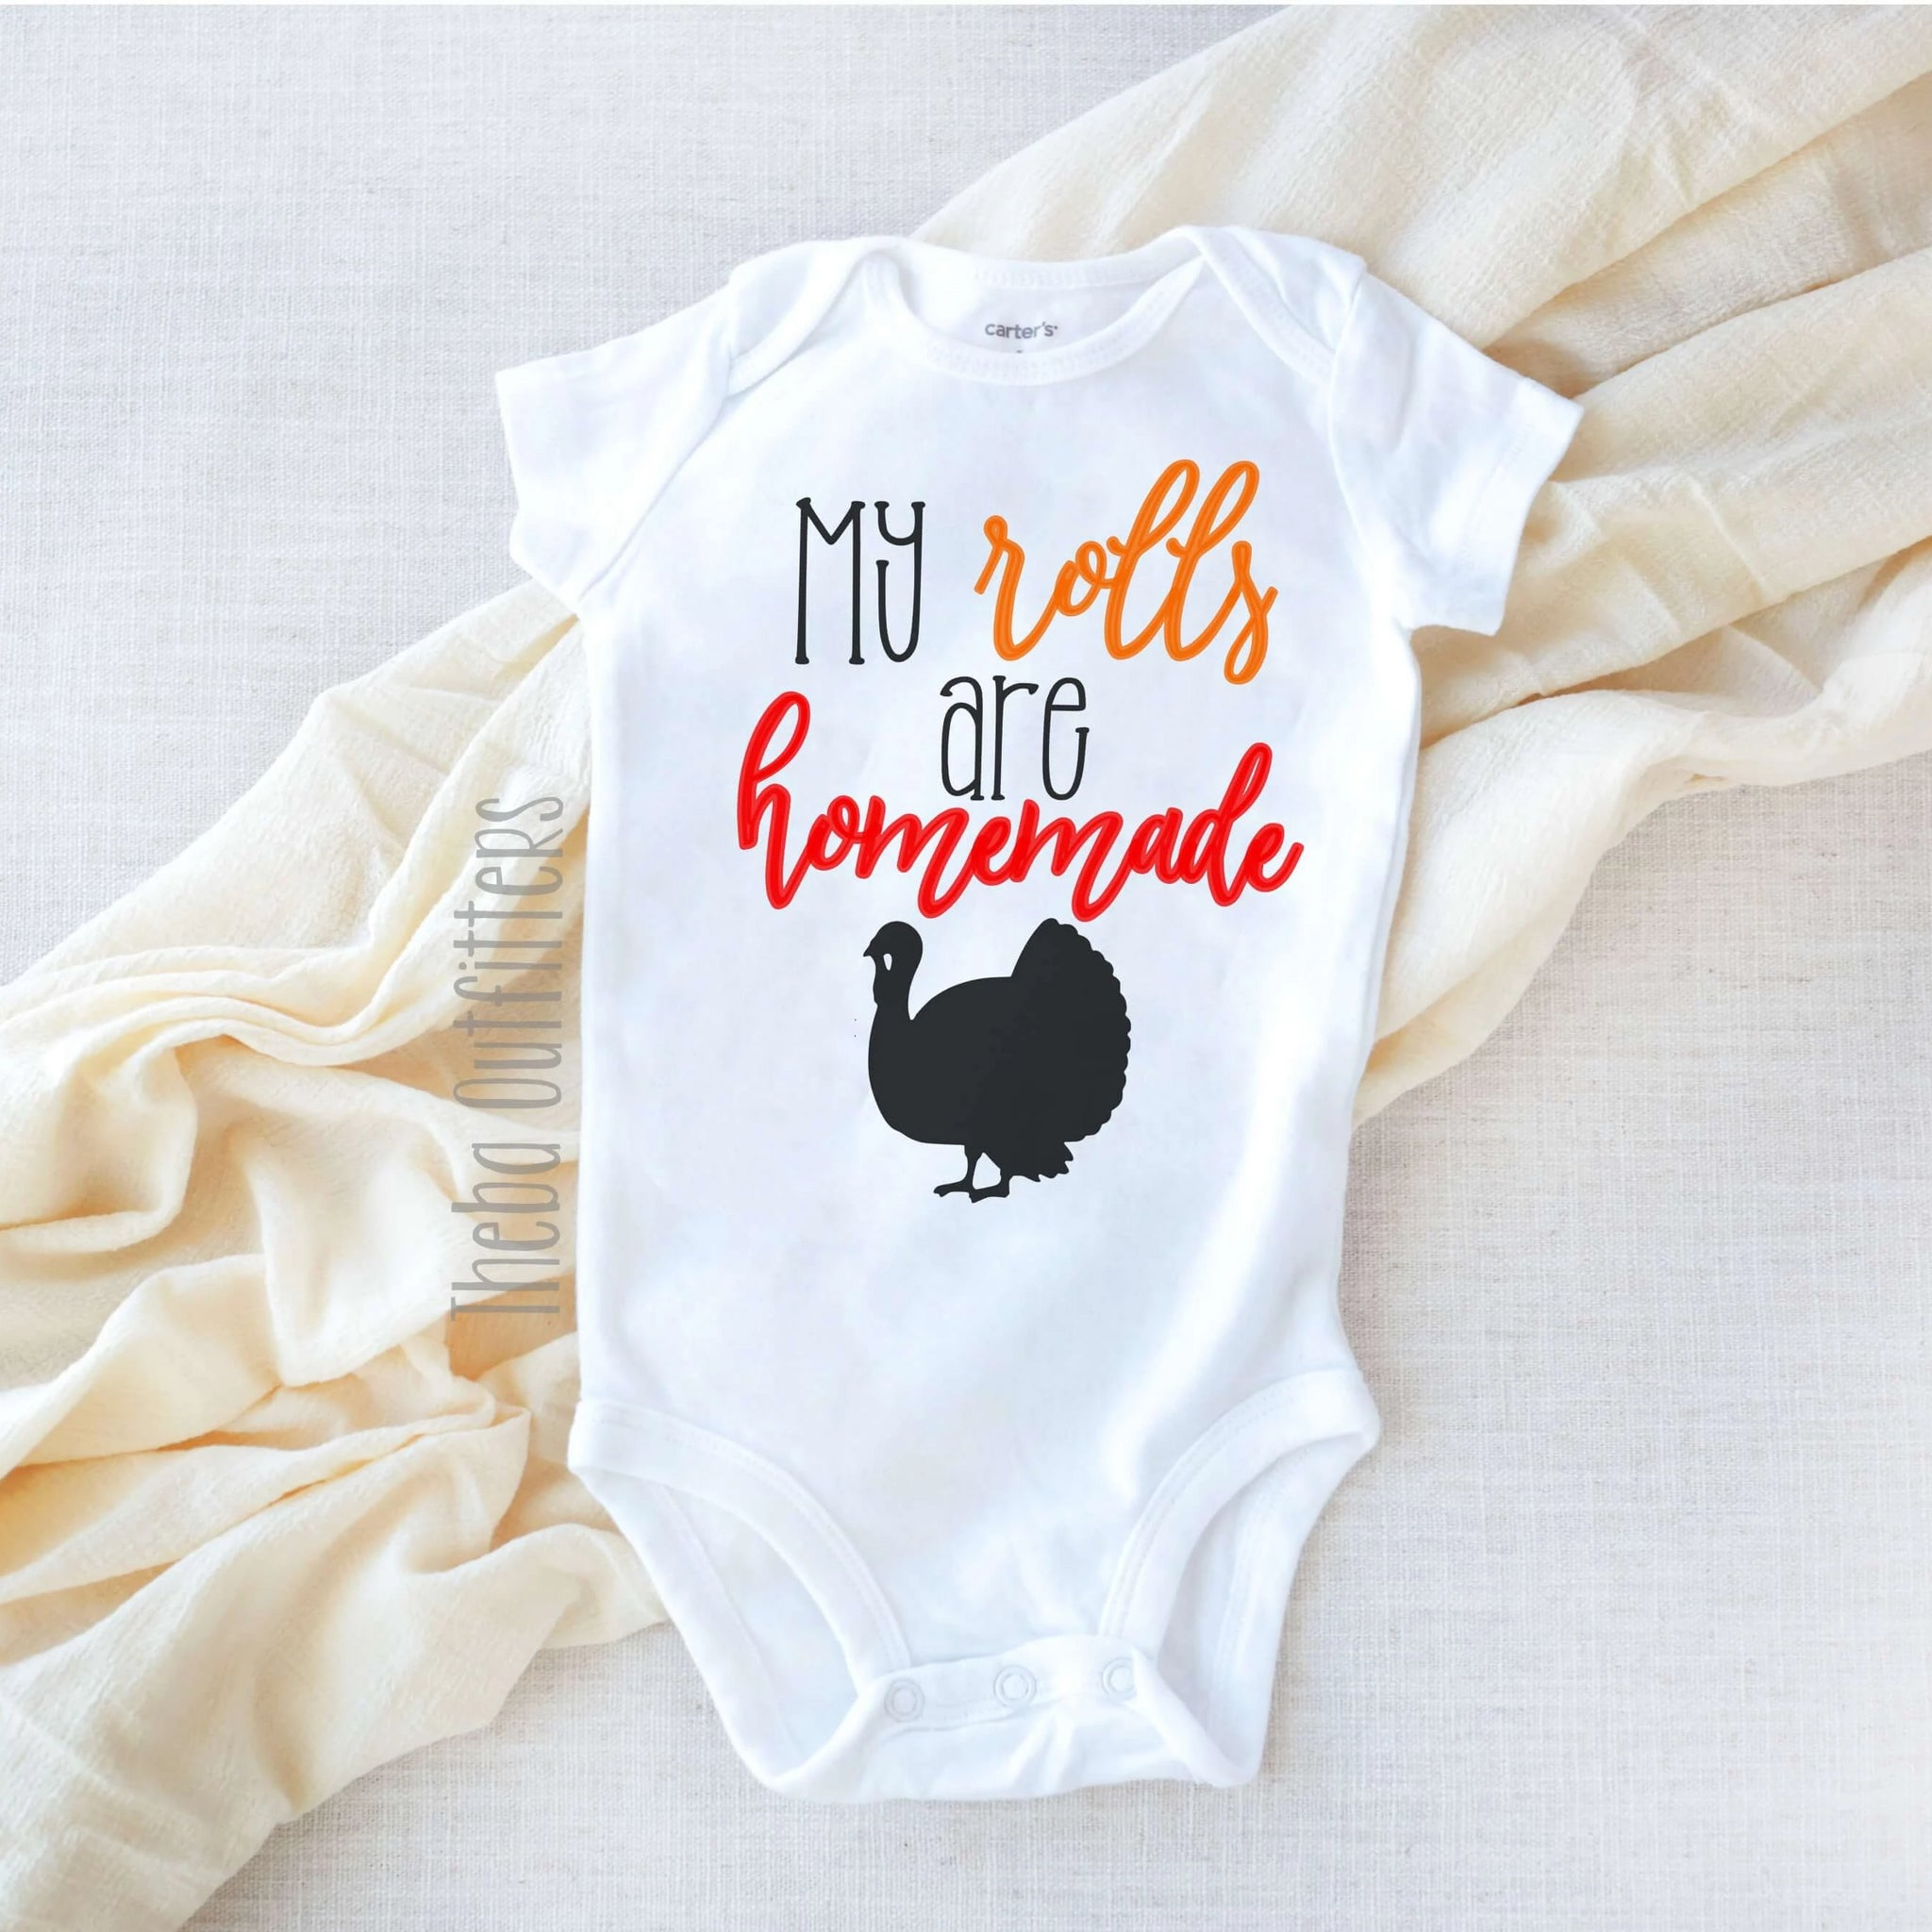 'My Rolls are Homemade' Onesie Thanksgiving Bodysuit Tee Shirt Infant Baby Toddler Theba Outfitters